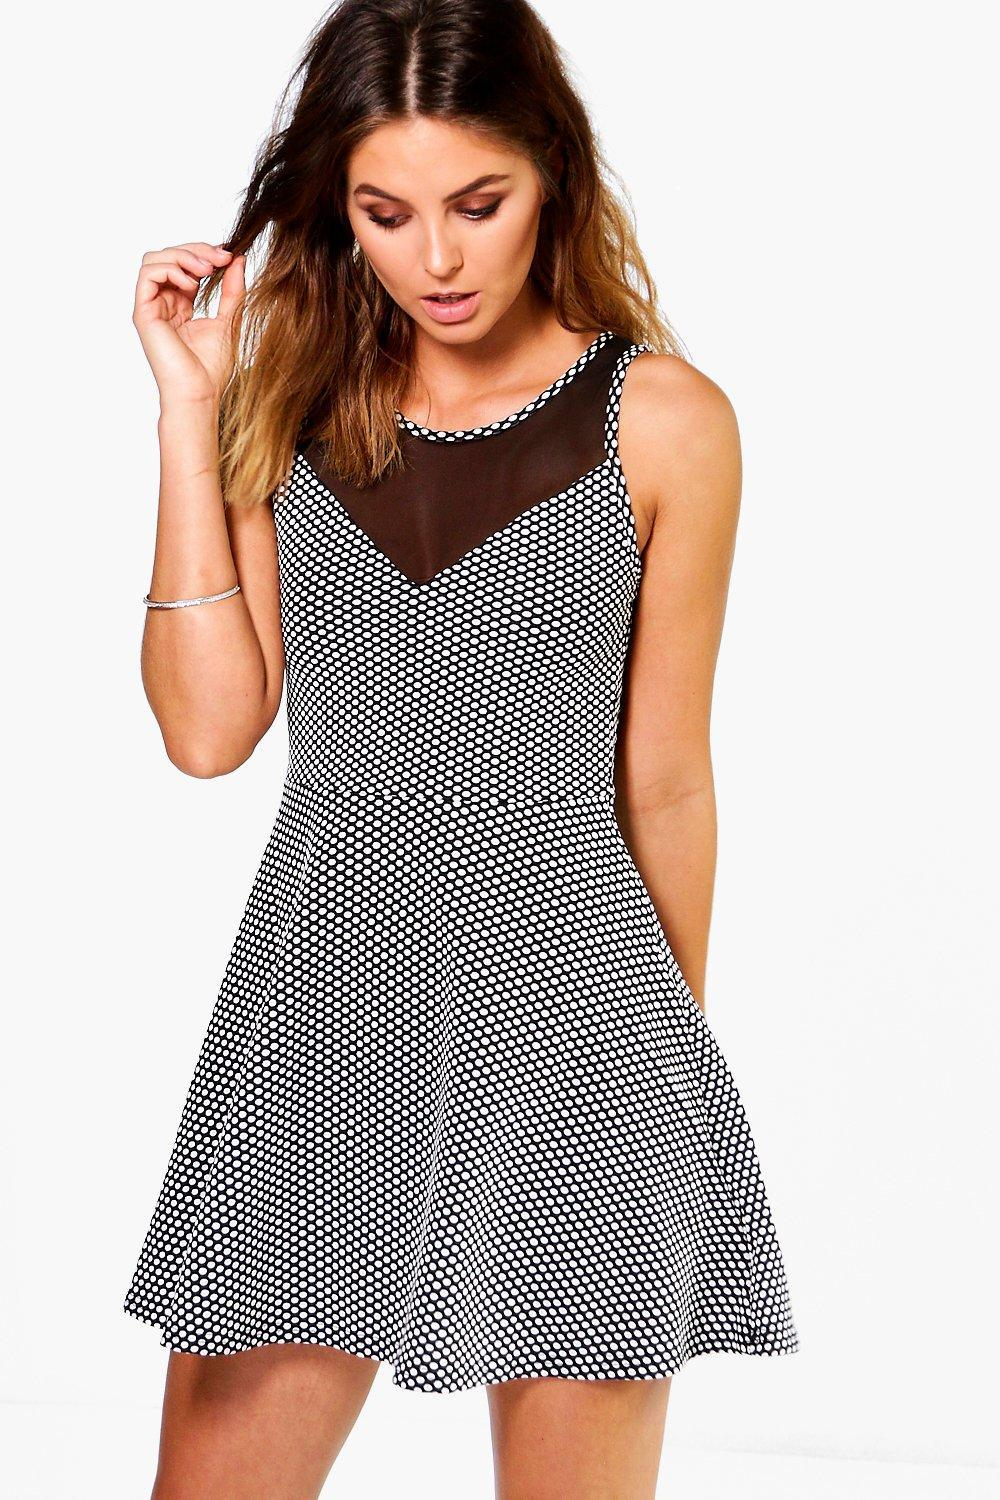 Mesh Panel Skater Dress Multi - length: mini; neckline: round neck; sleeve style: sleeveless; bust detail: sheer at bust; pattern: polka dot; secondary colour: white; predominant colour: navy; occasions: evening; fit: fitted at waist & bust; style: fit & flare; fibres: polyester/polyamide - stretch; sleeve length: sleeveless; pattern type: fabric; texture group: jersey - stretchy/drapey; multicoloured: multicoloured; season: s/s 2016; wardrobe: event